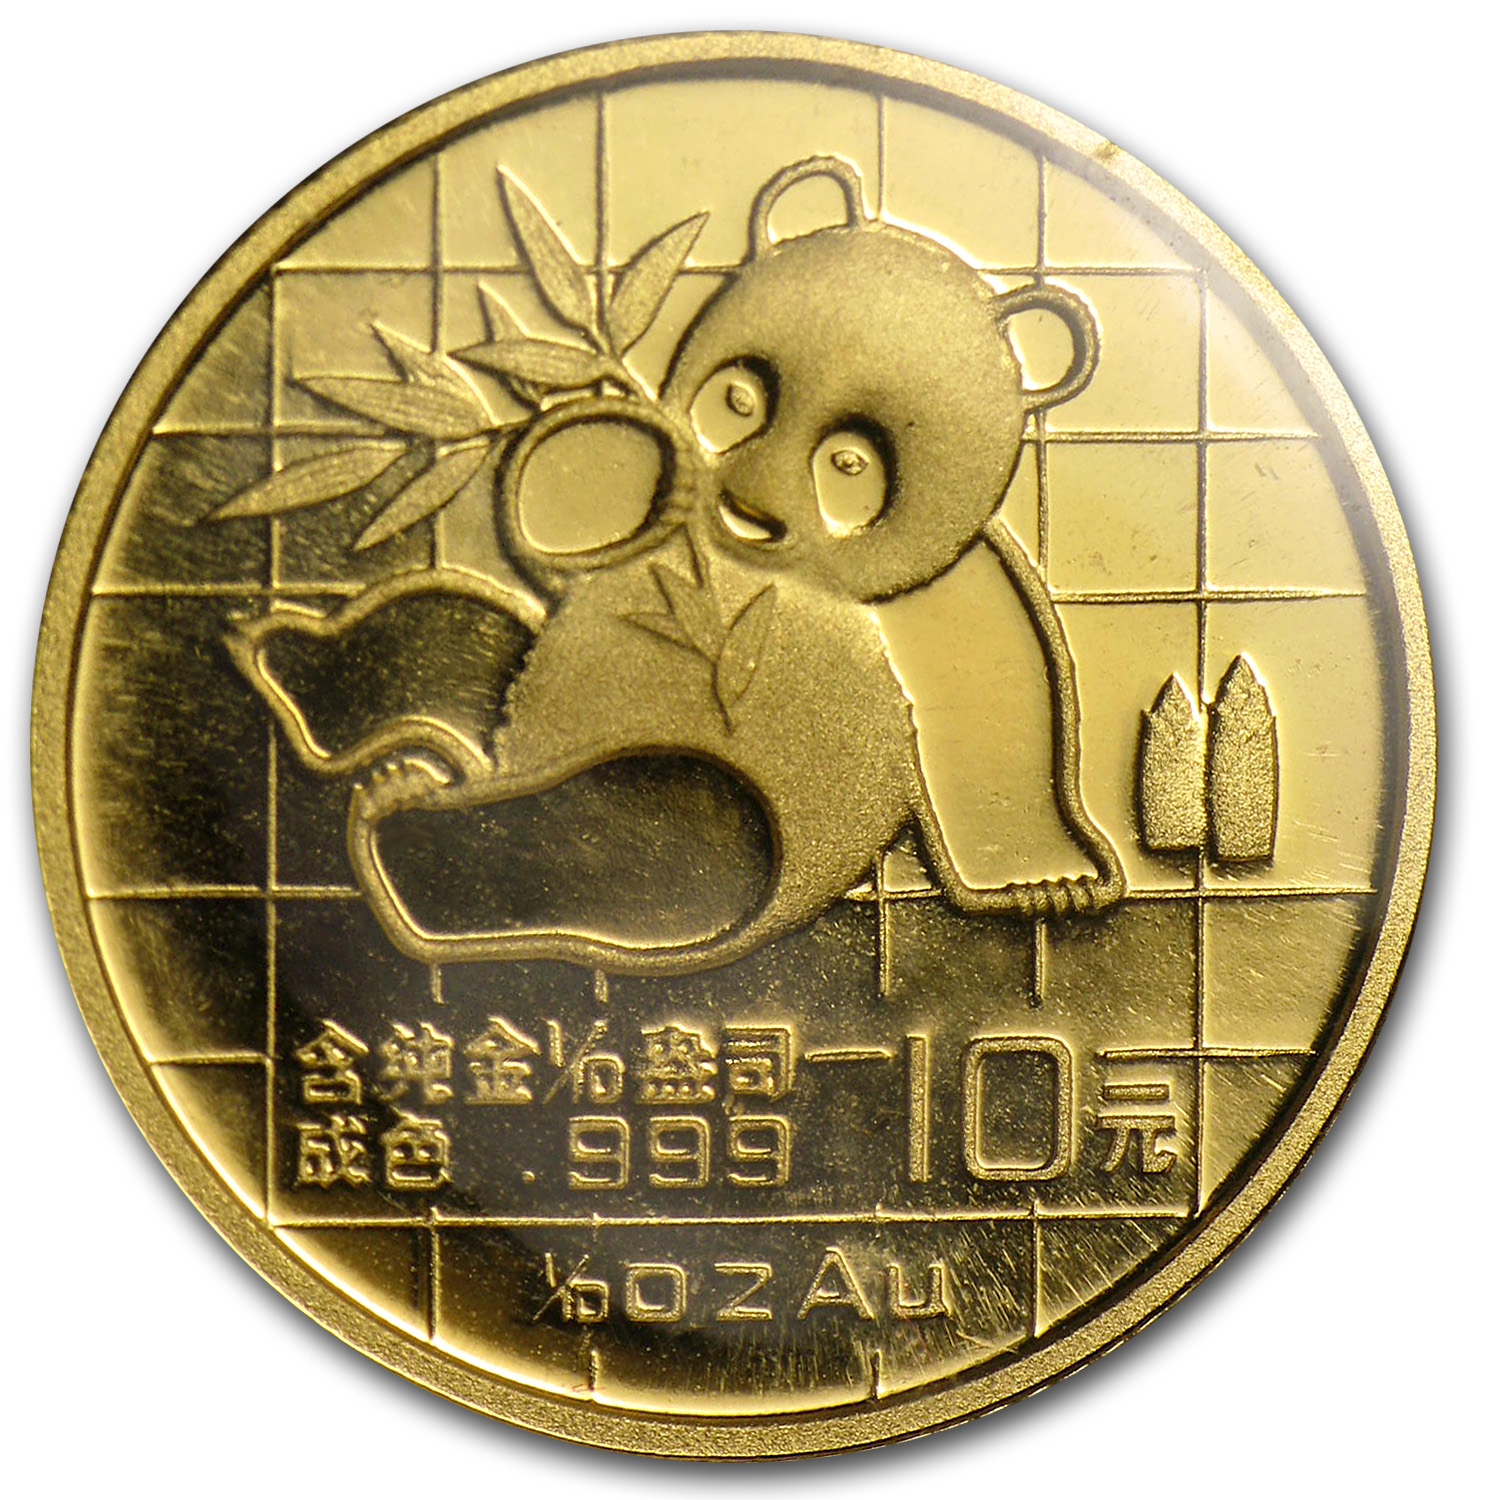 1989 (1/10 oz) Gold Chinese Pandas - Large Date (Sealed)